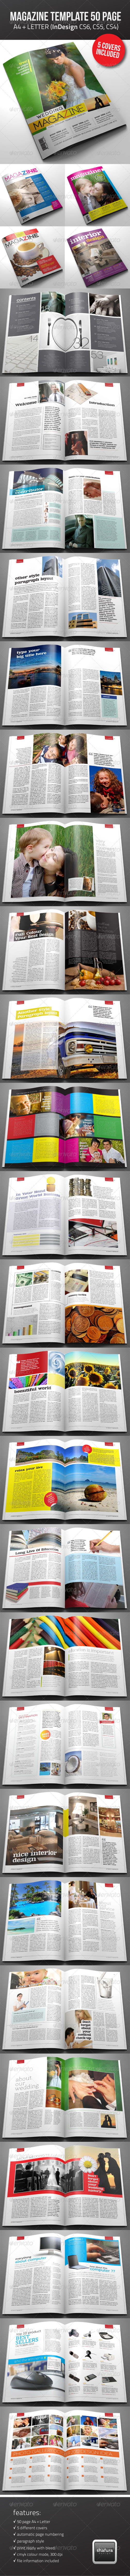 GraphicRiver InDesign Magazine Template 50 Page vol.02 3160633